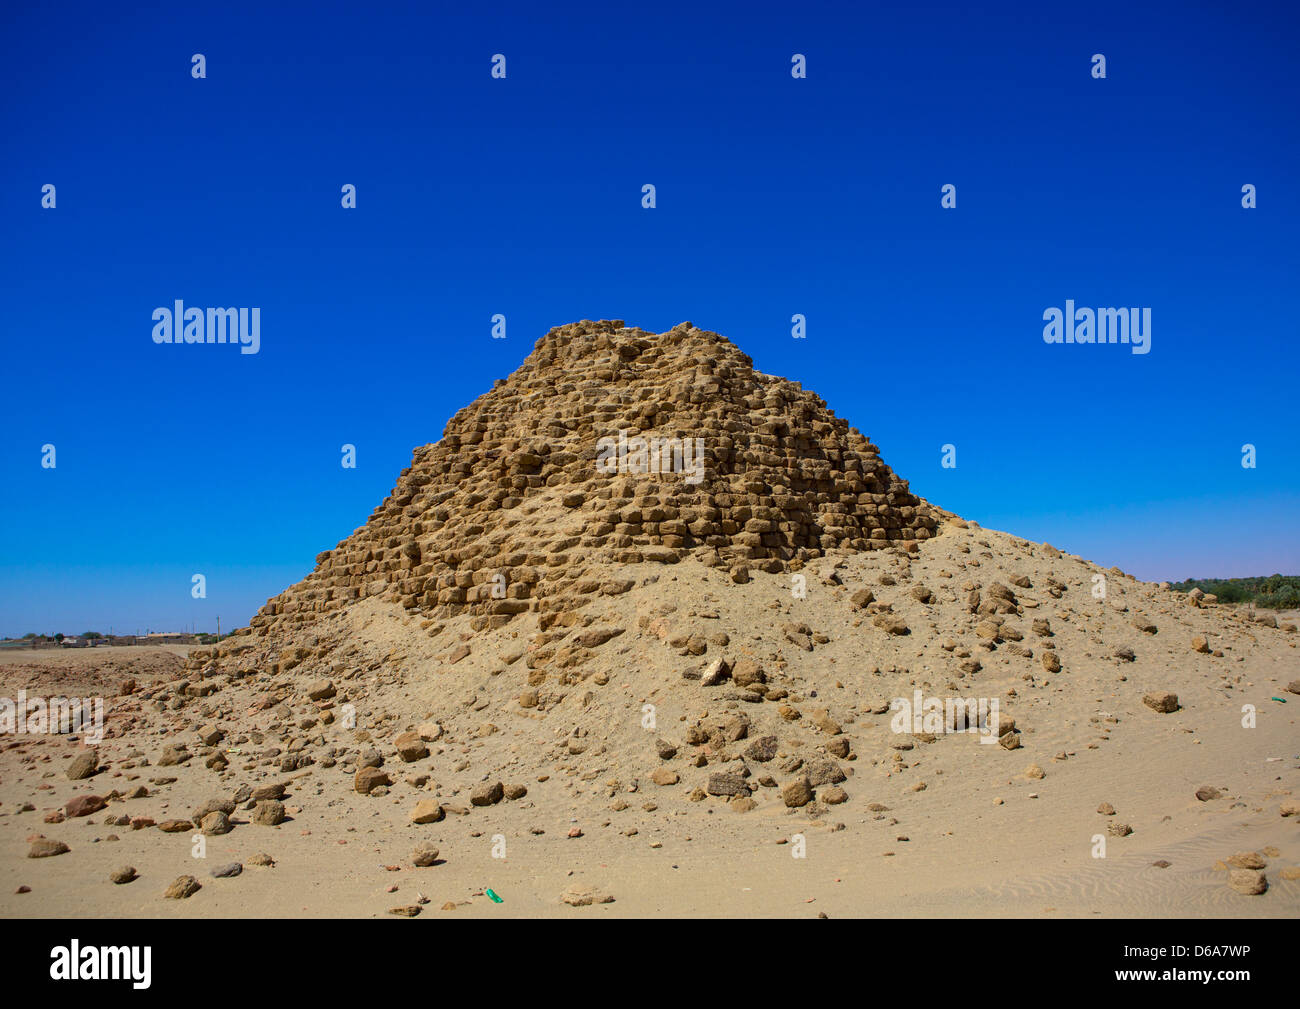 Royal Pyramids Of Napata, Nuri, Sudan Stock Photo